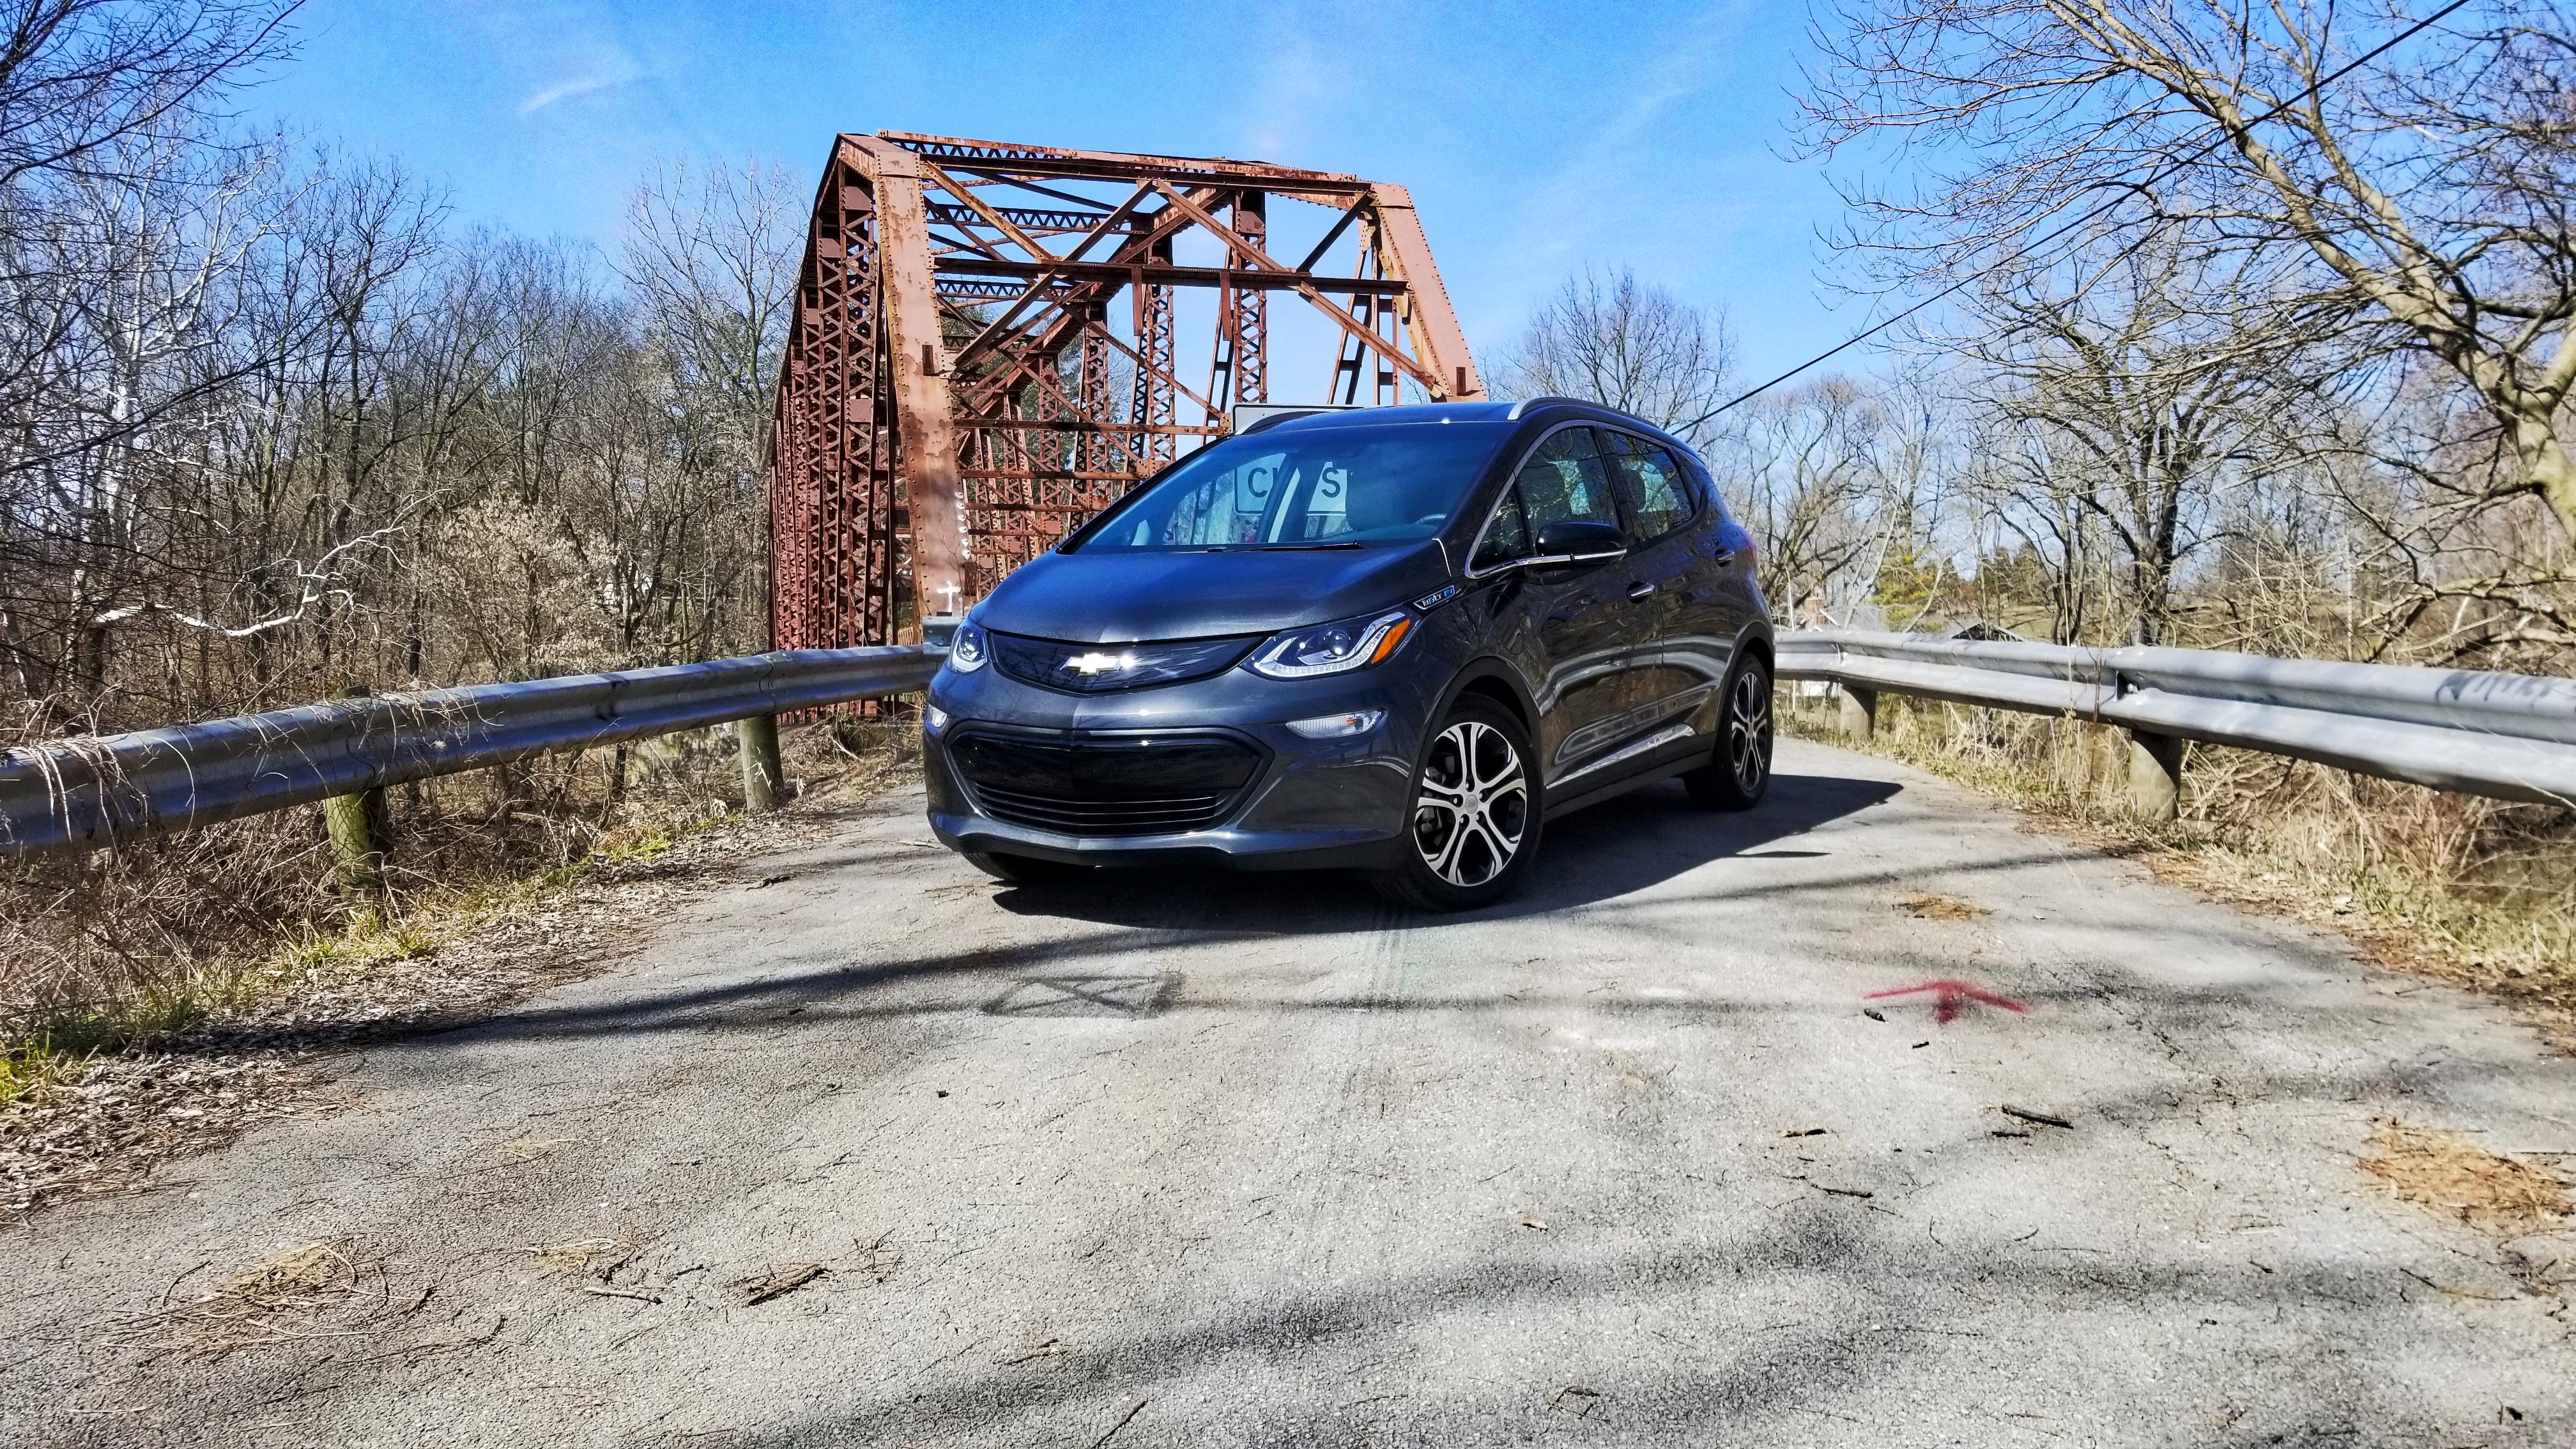 Gm Will Reach Electric Car Tax Credit Limit This Year